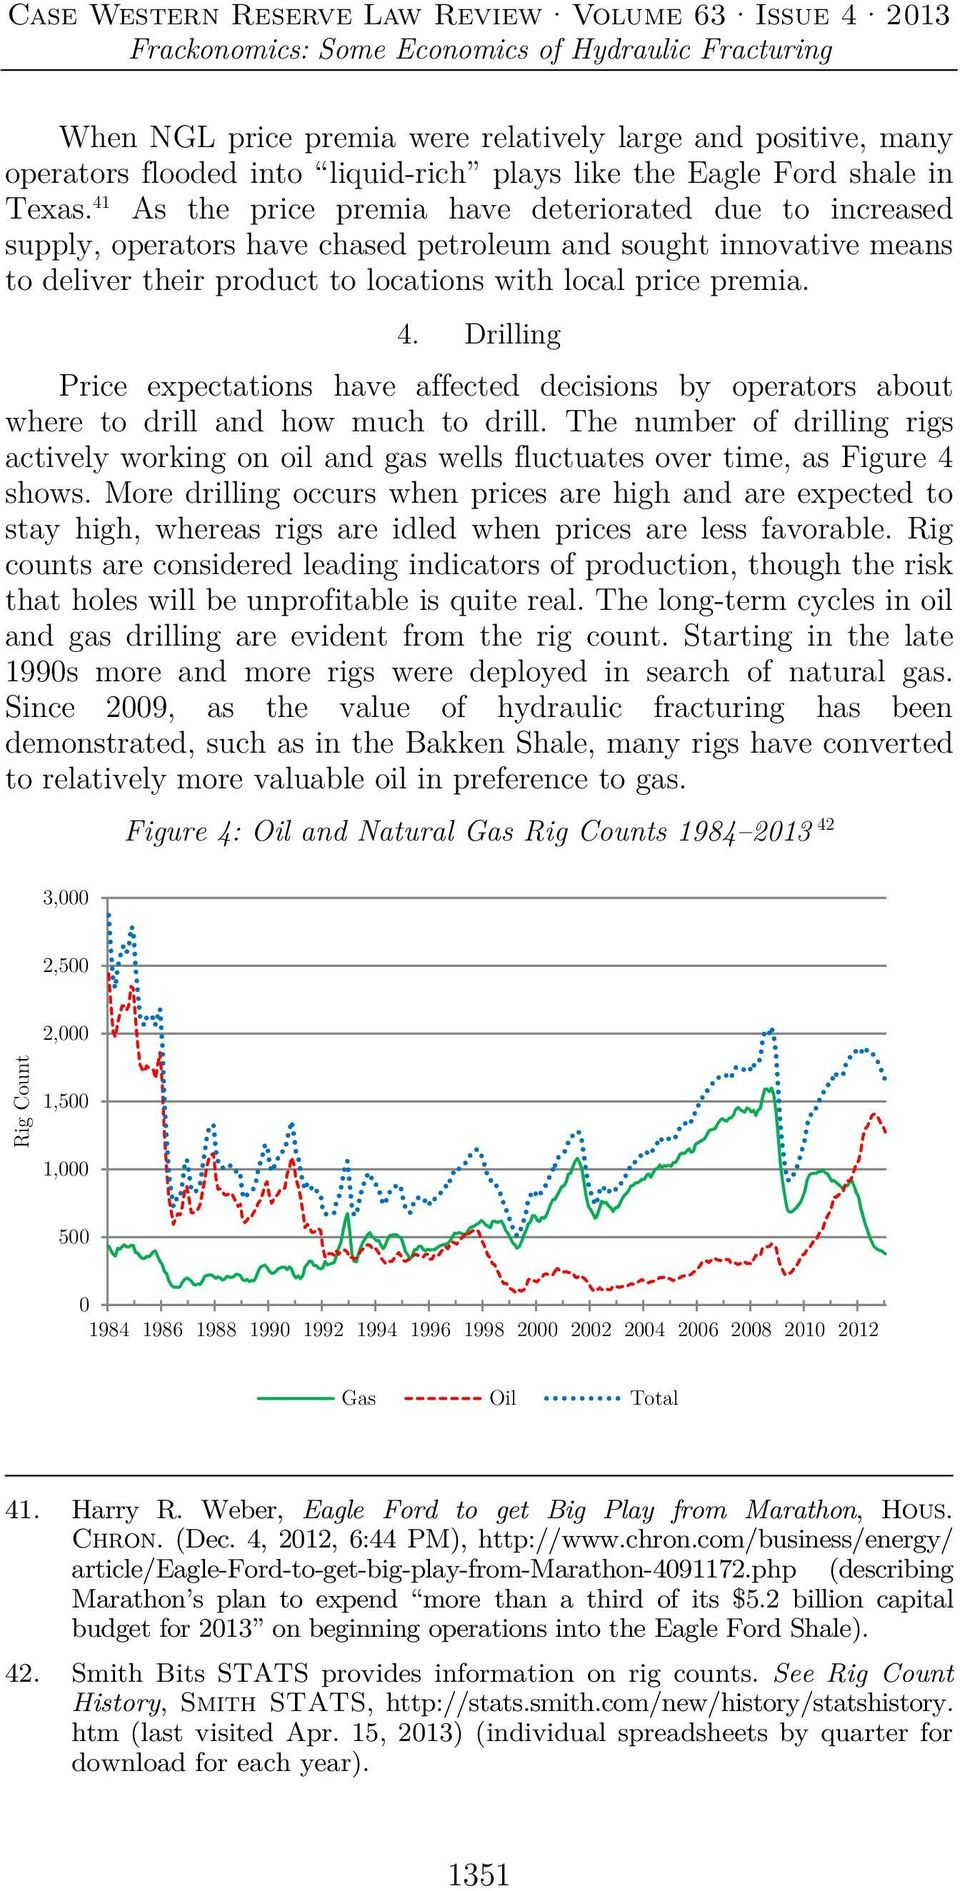 Drilling Price expectations have affected decisions by operators about where to drill and how much to drill.